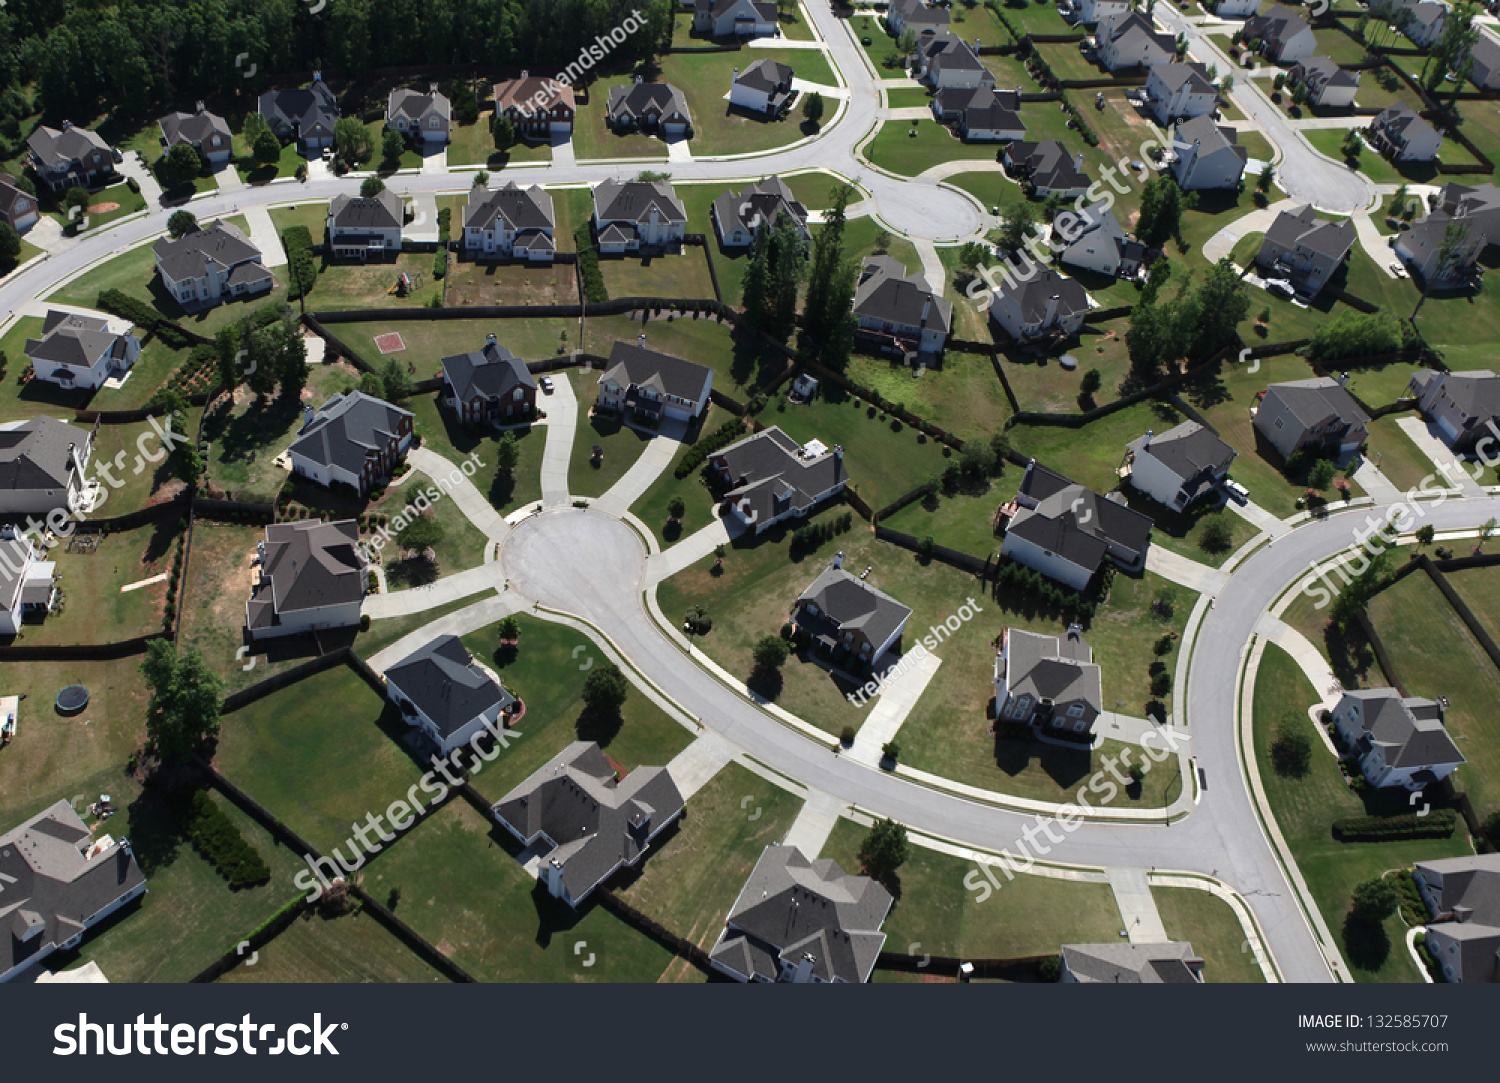 http://image.shutterstock.com/z/stock-photo-aerial-of-modern-suburban-housing-in-the-eastern-united-states-132585707.jpg